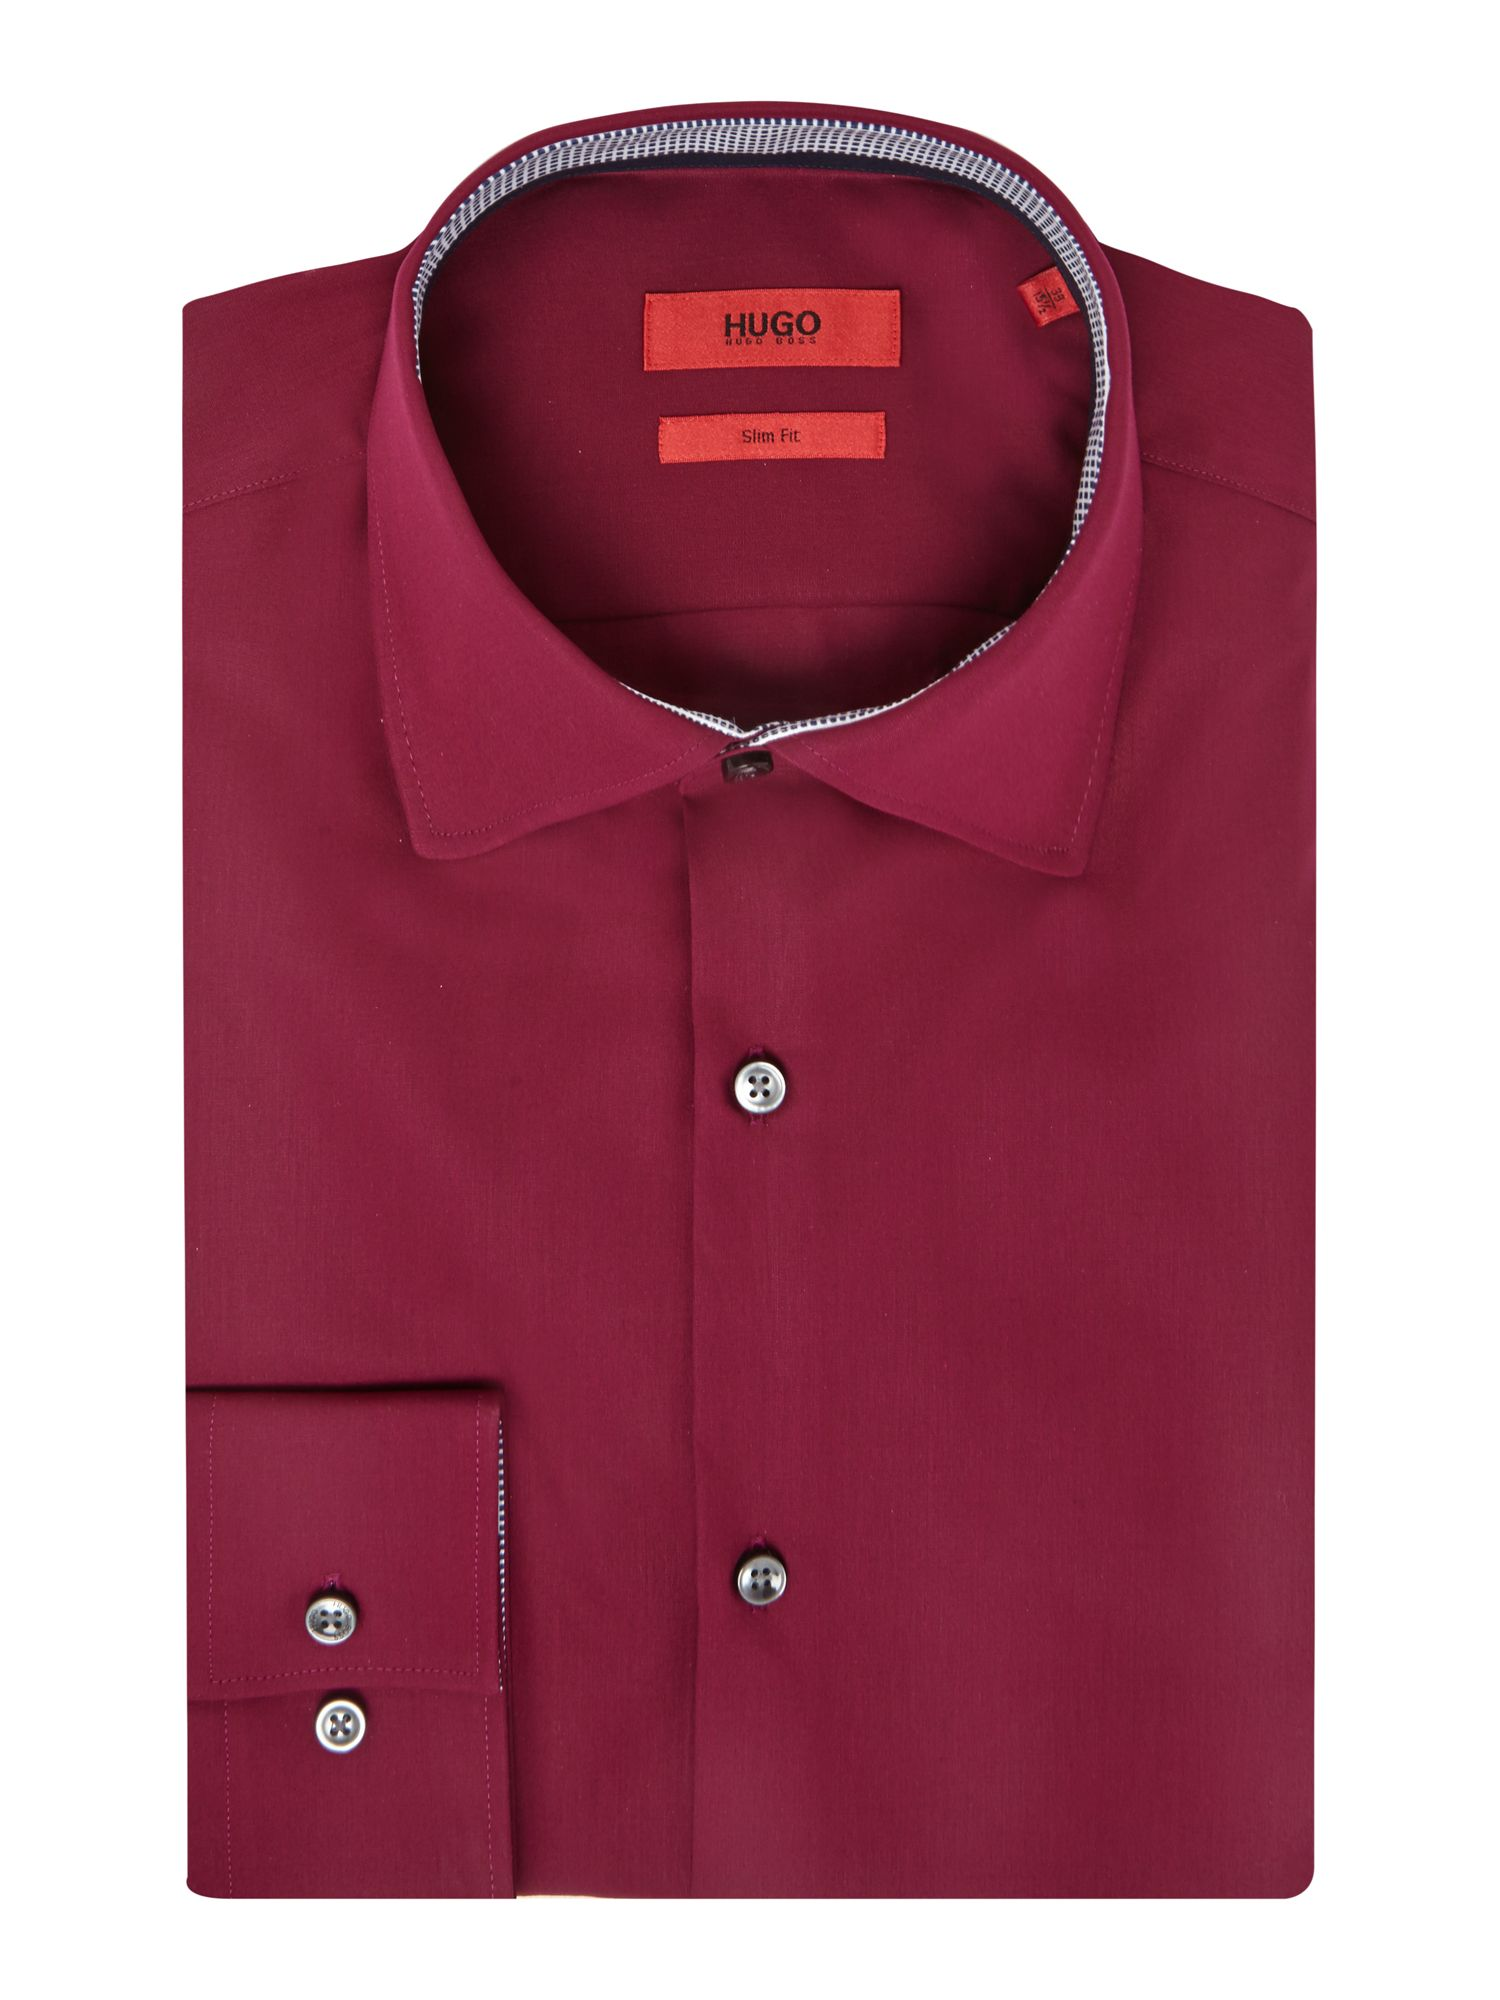 HUGO Men's Hugo Jerry Slim Fit Double Trim Shirt, Port